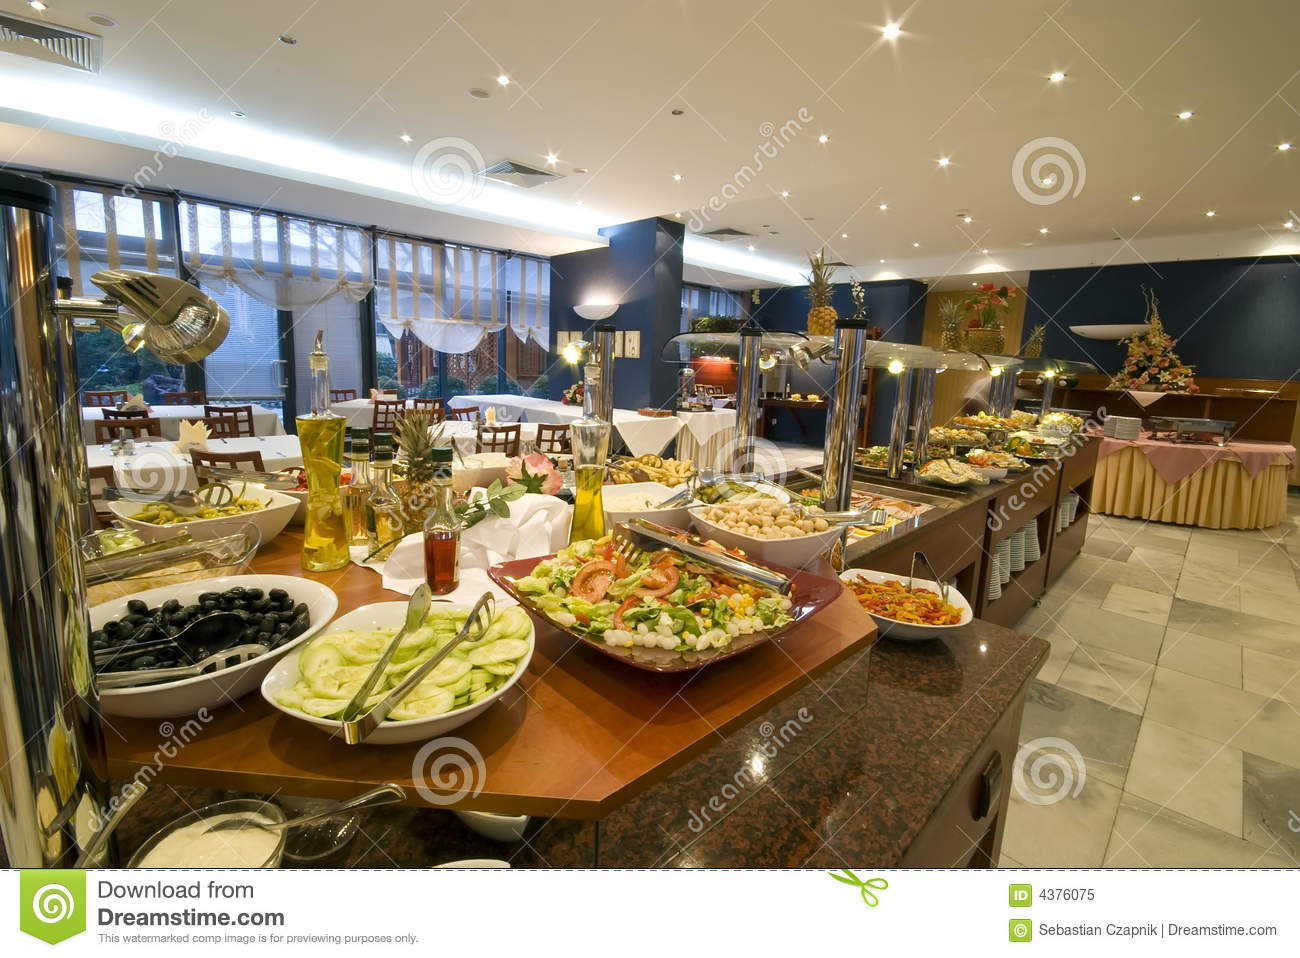 Wonderful Hotel Buffet Dining Rooms 1300 x 958 · 189 kB · jpeg